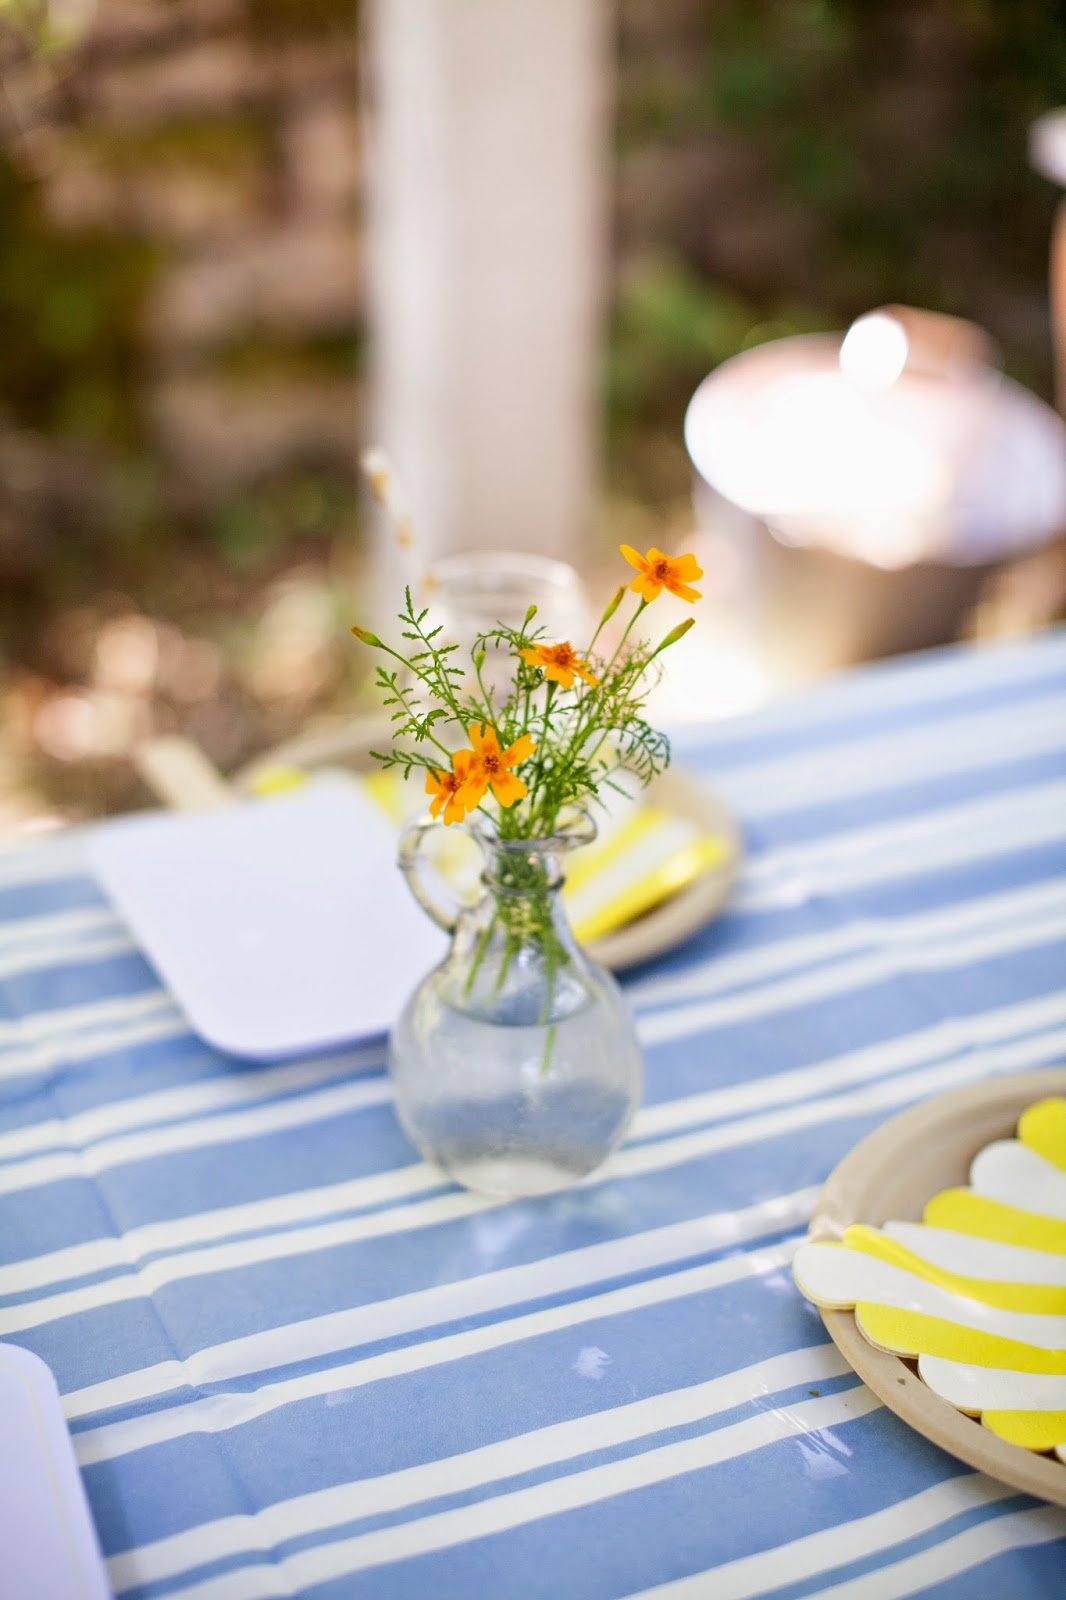 Marigolds lend a little sweetness to the table and they're bug repellant!